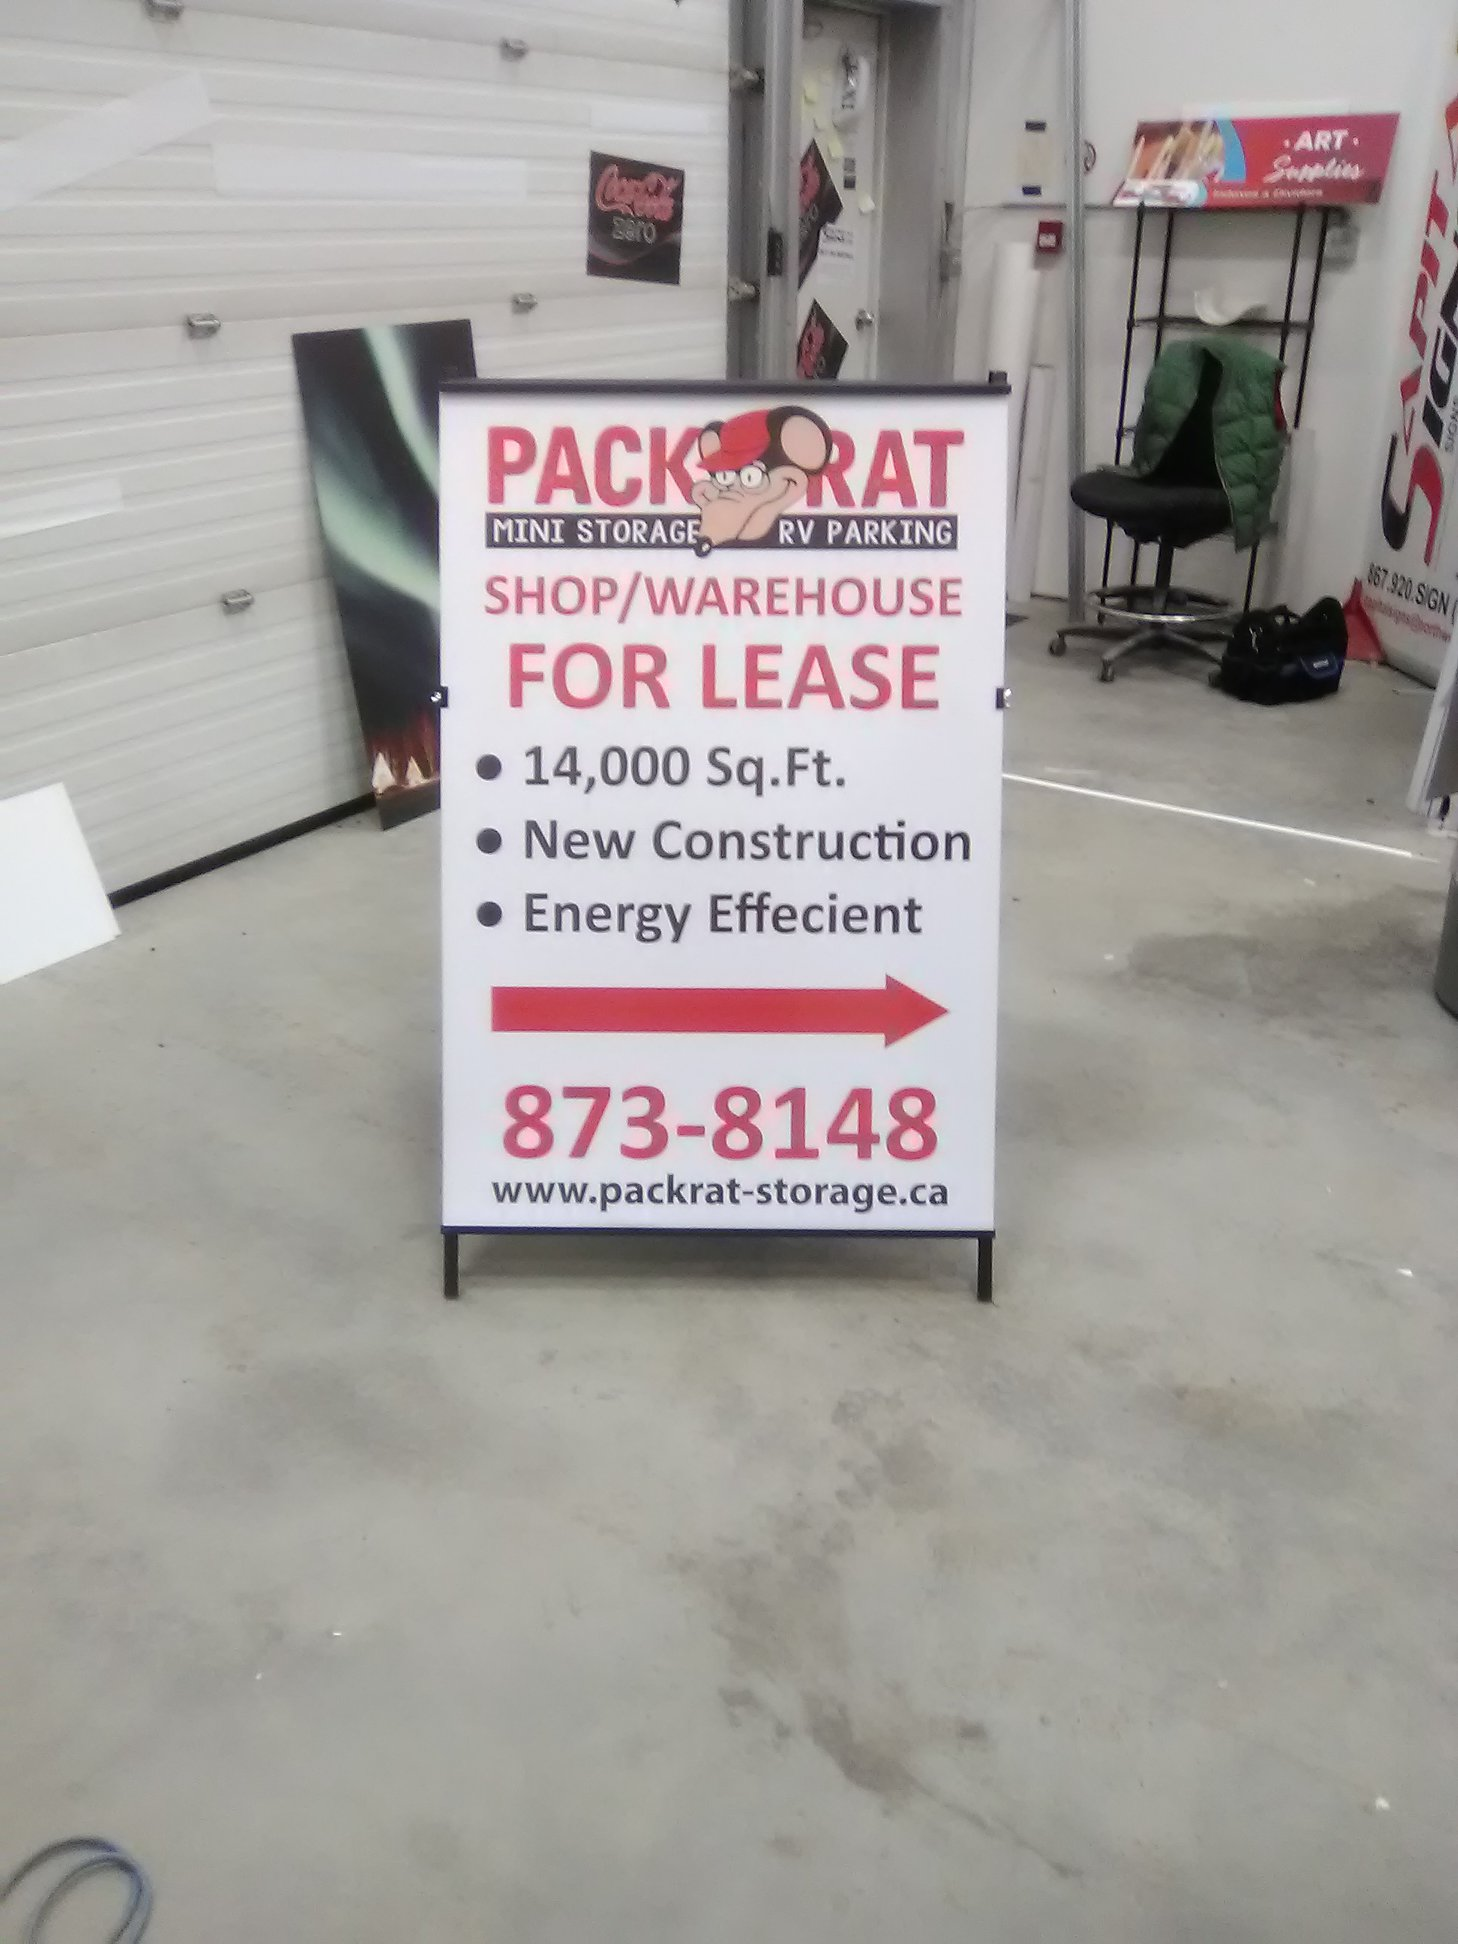 Packrat Storage Sandwich Board Signage